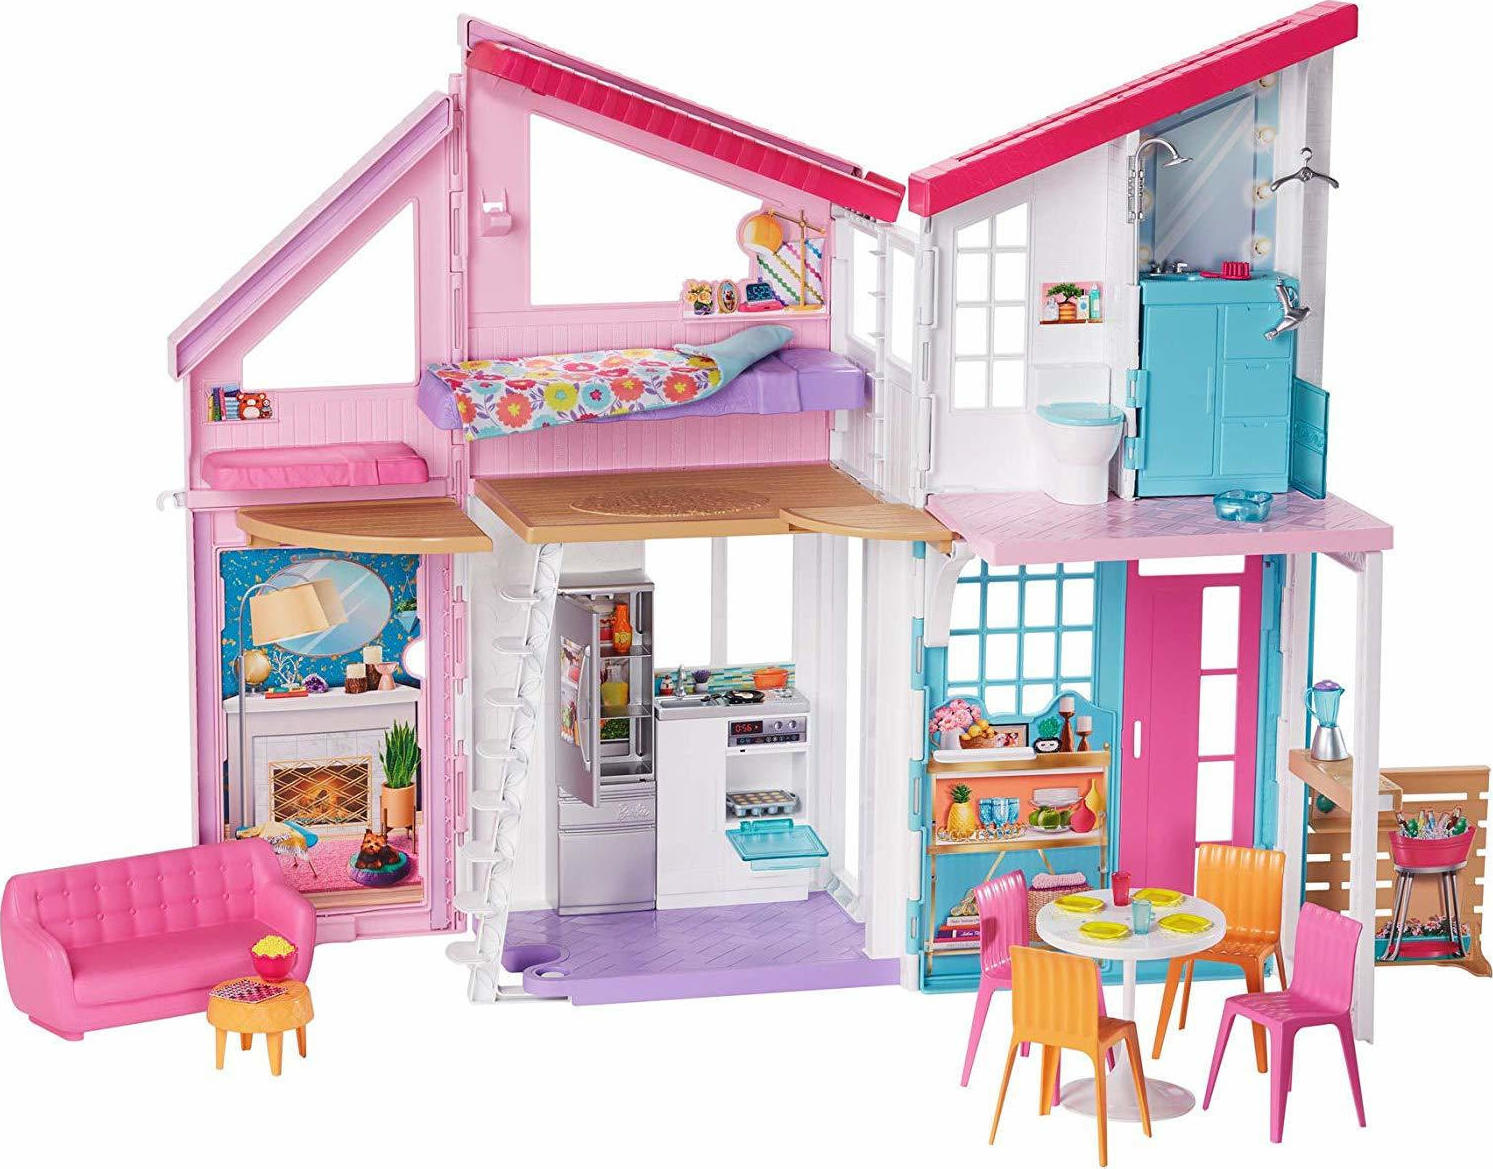 Mattel Barbie - Malibu House Playset (FXG57),enx.051754